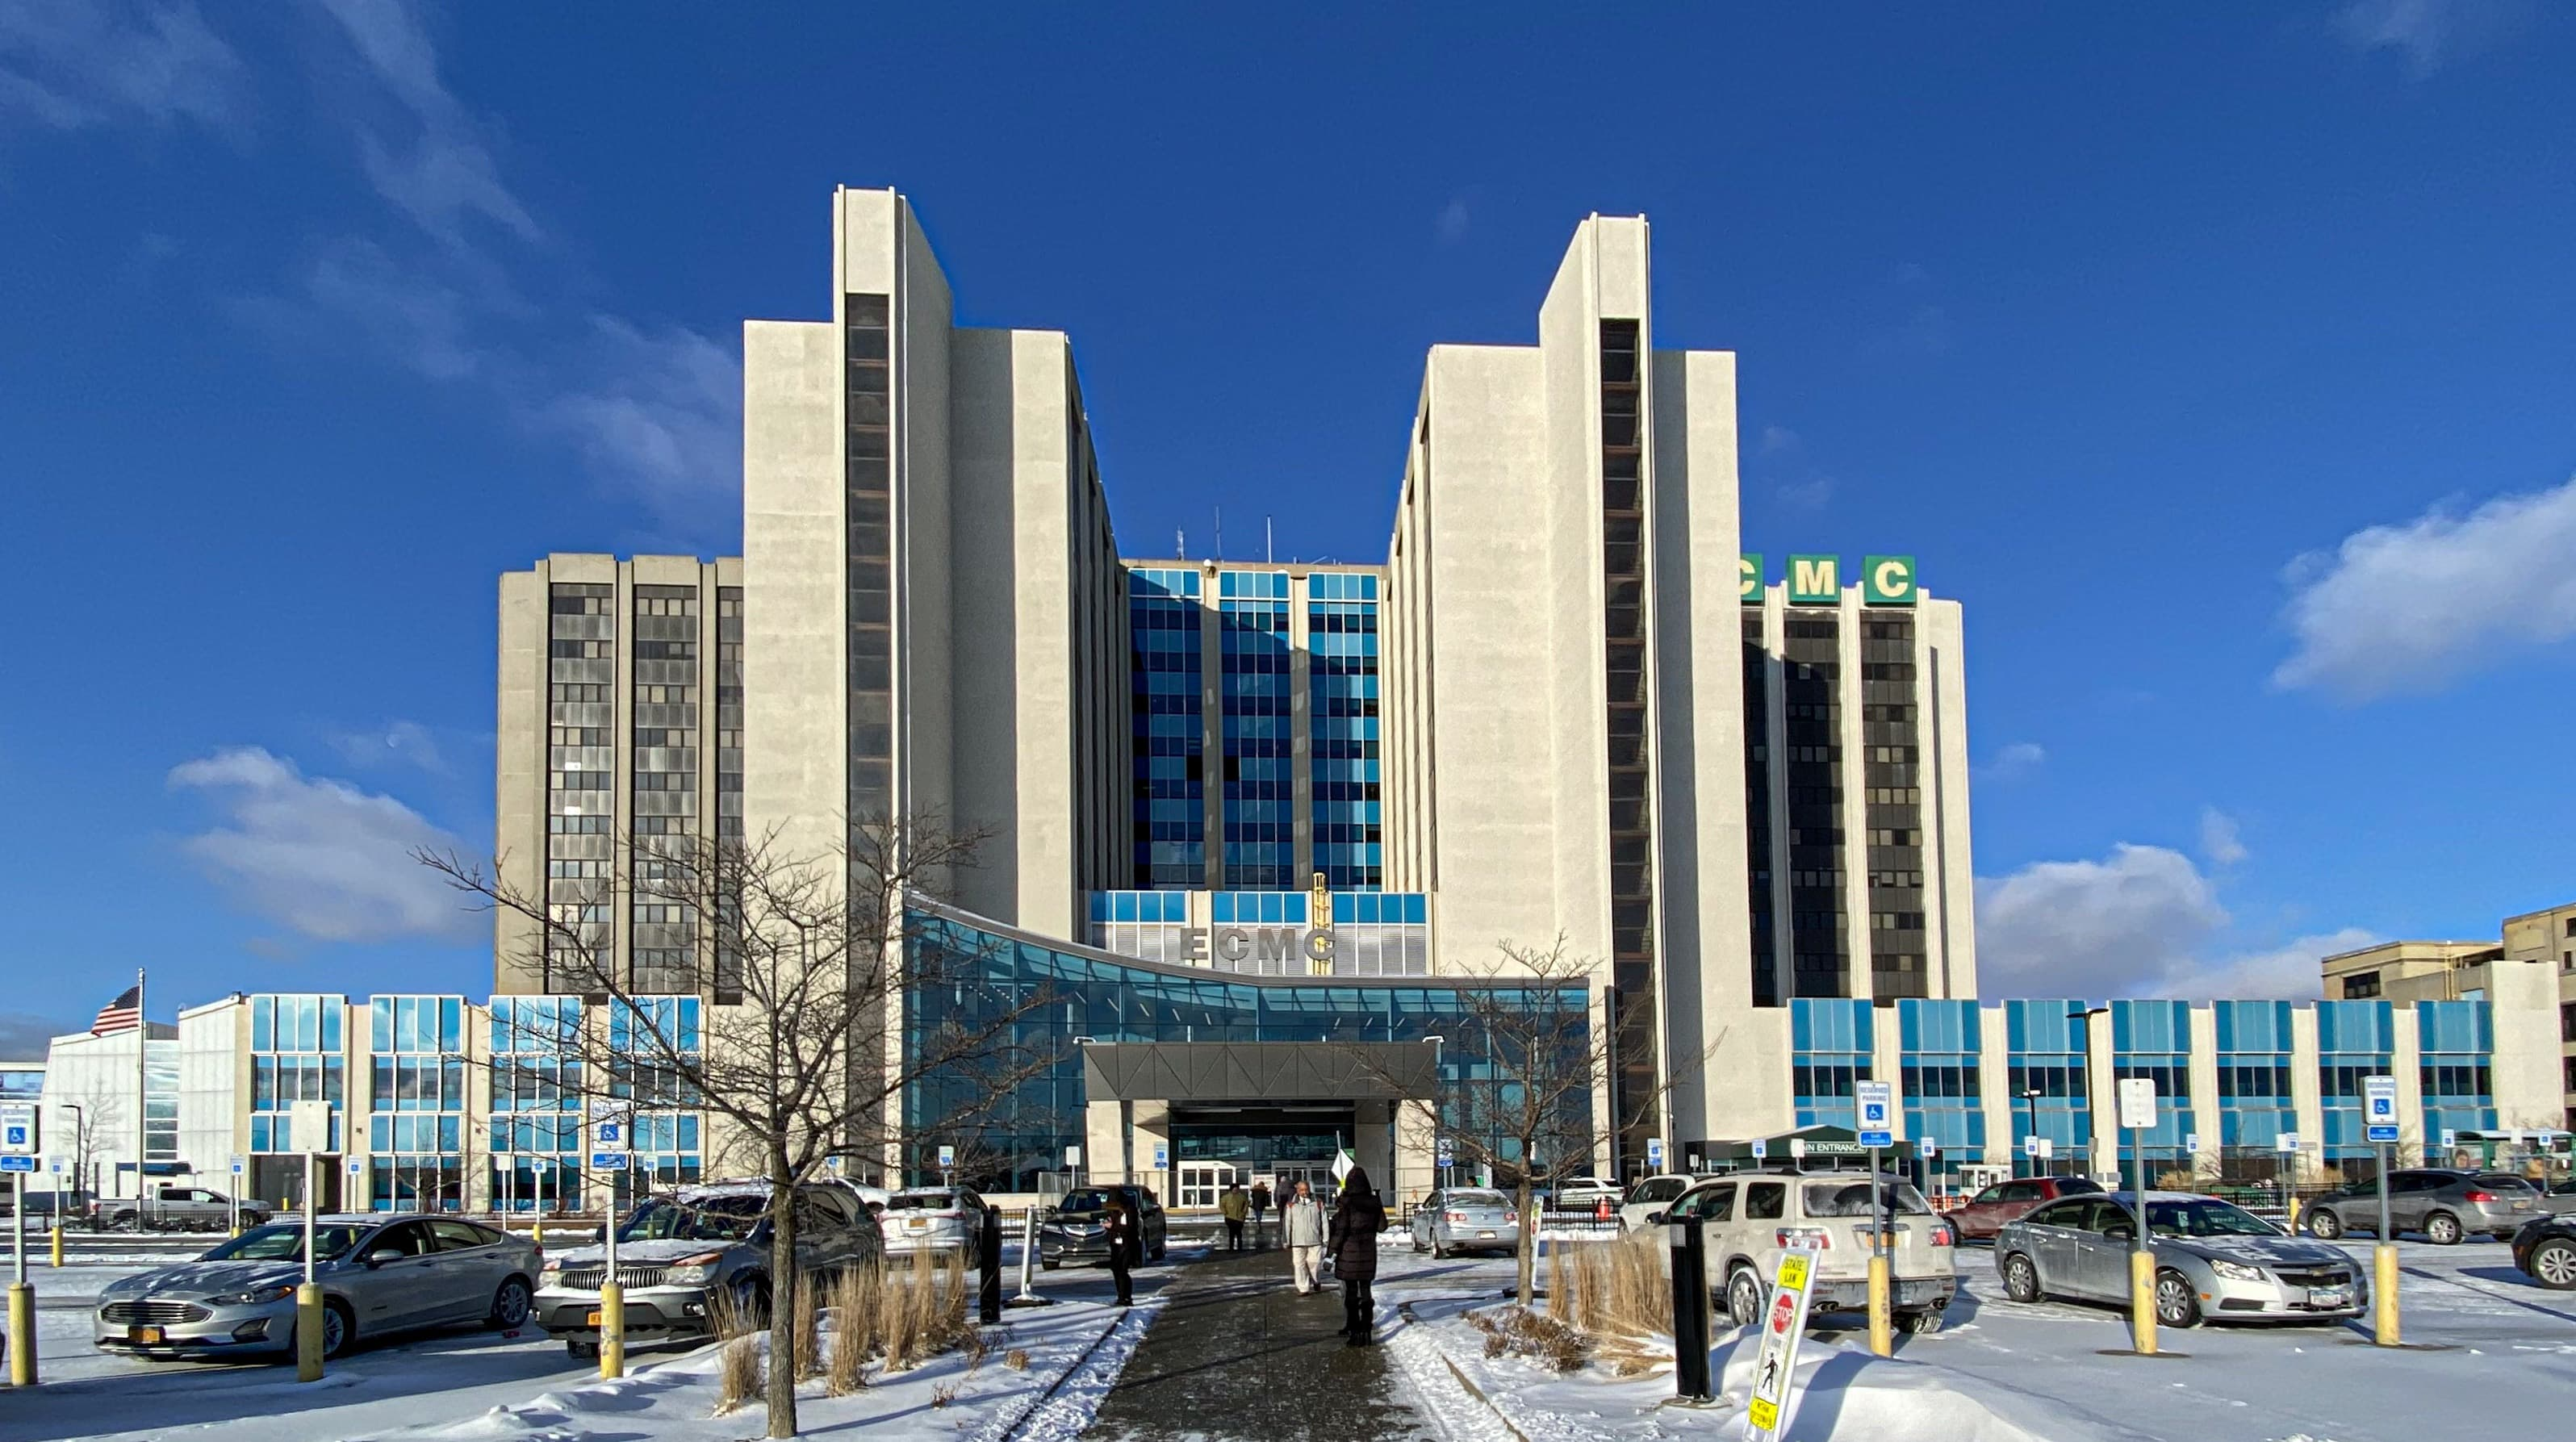 20200214 ECMC Front Entry IMG_1576